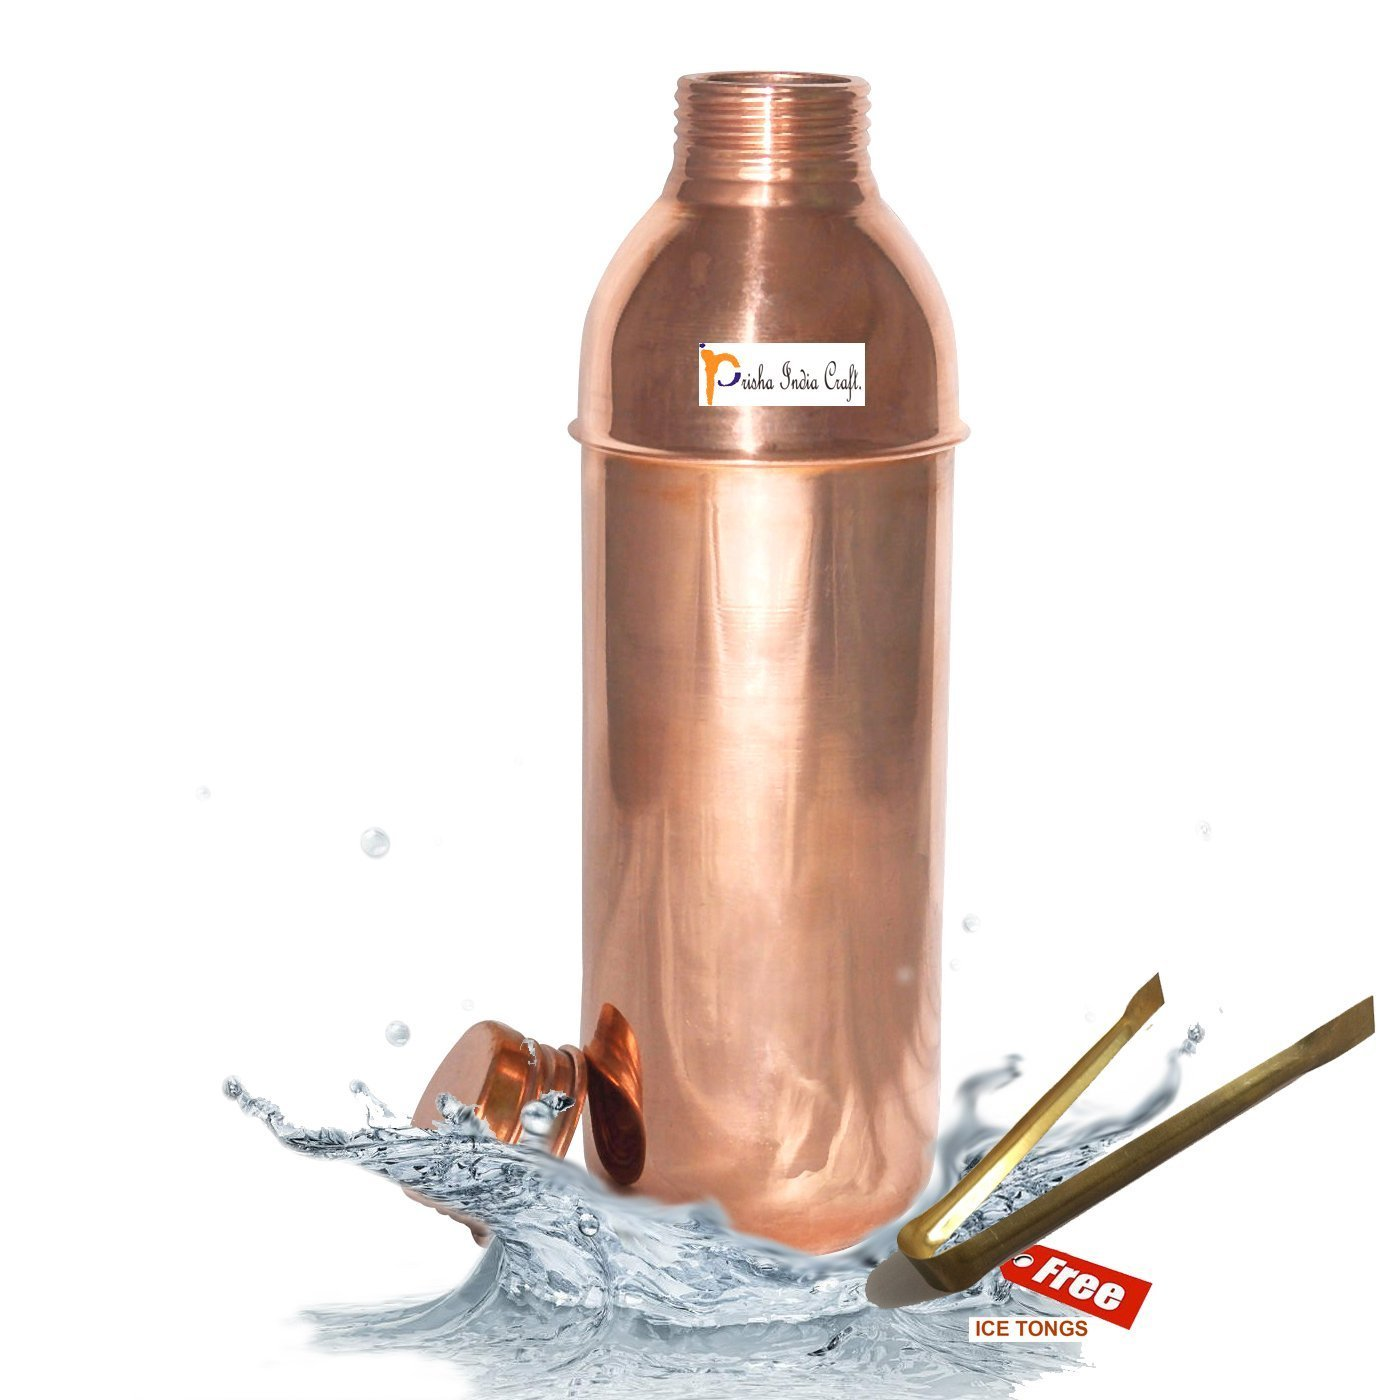 800ml / 27oz - Prisha India Craft ® Pure Copper Water Pitcher for the Refrigerator for Health Benefits Thermos Flask Indian Water Carafe - Handmade Christmas Gift